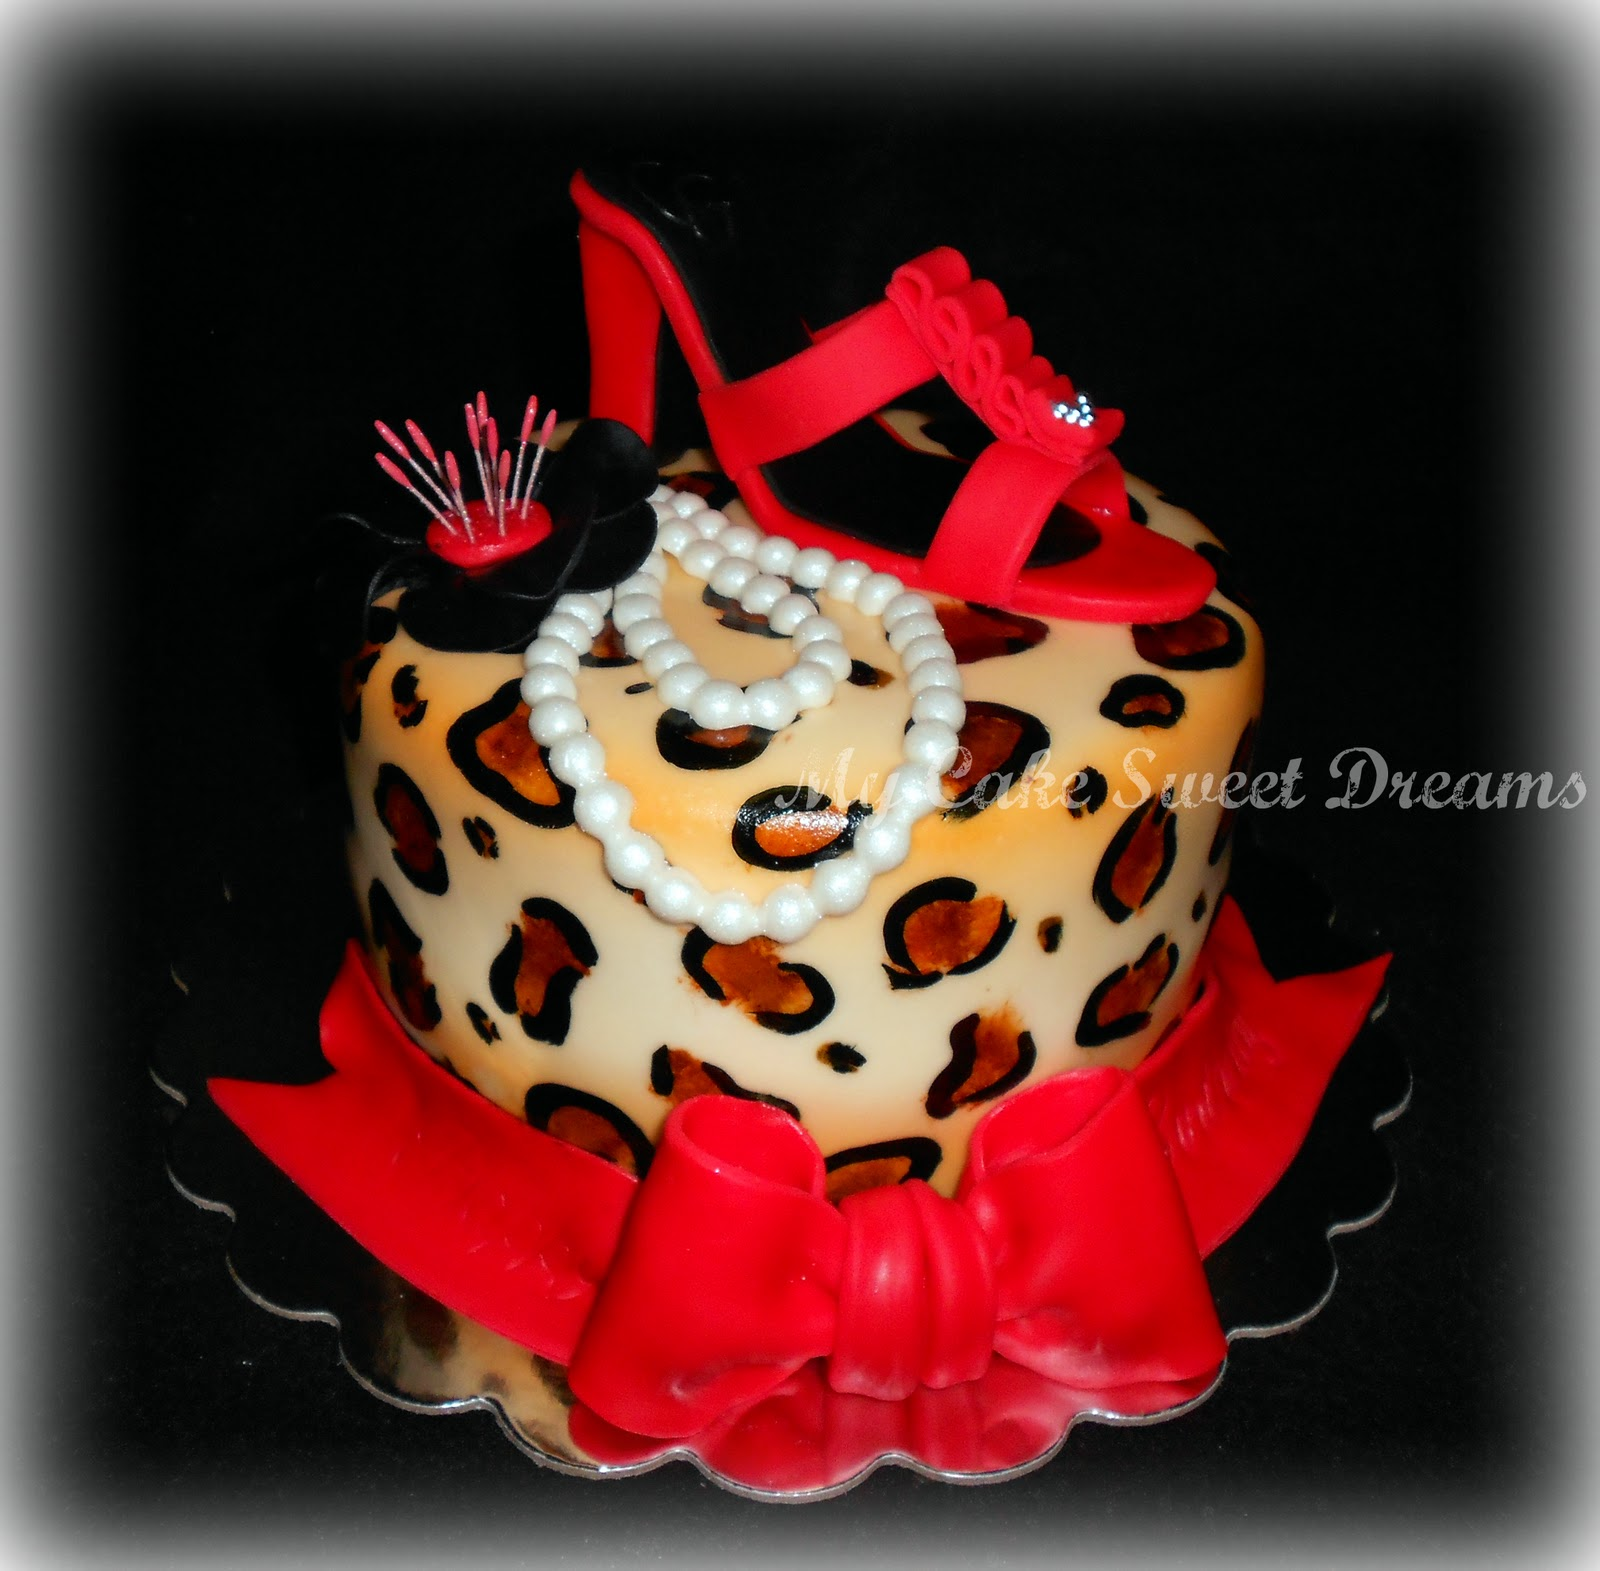 My Cake Sweet Dreams Leopard Cake With Red Shoe